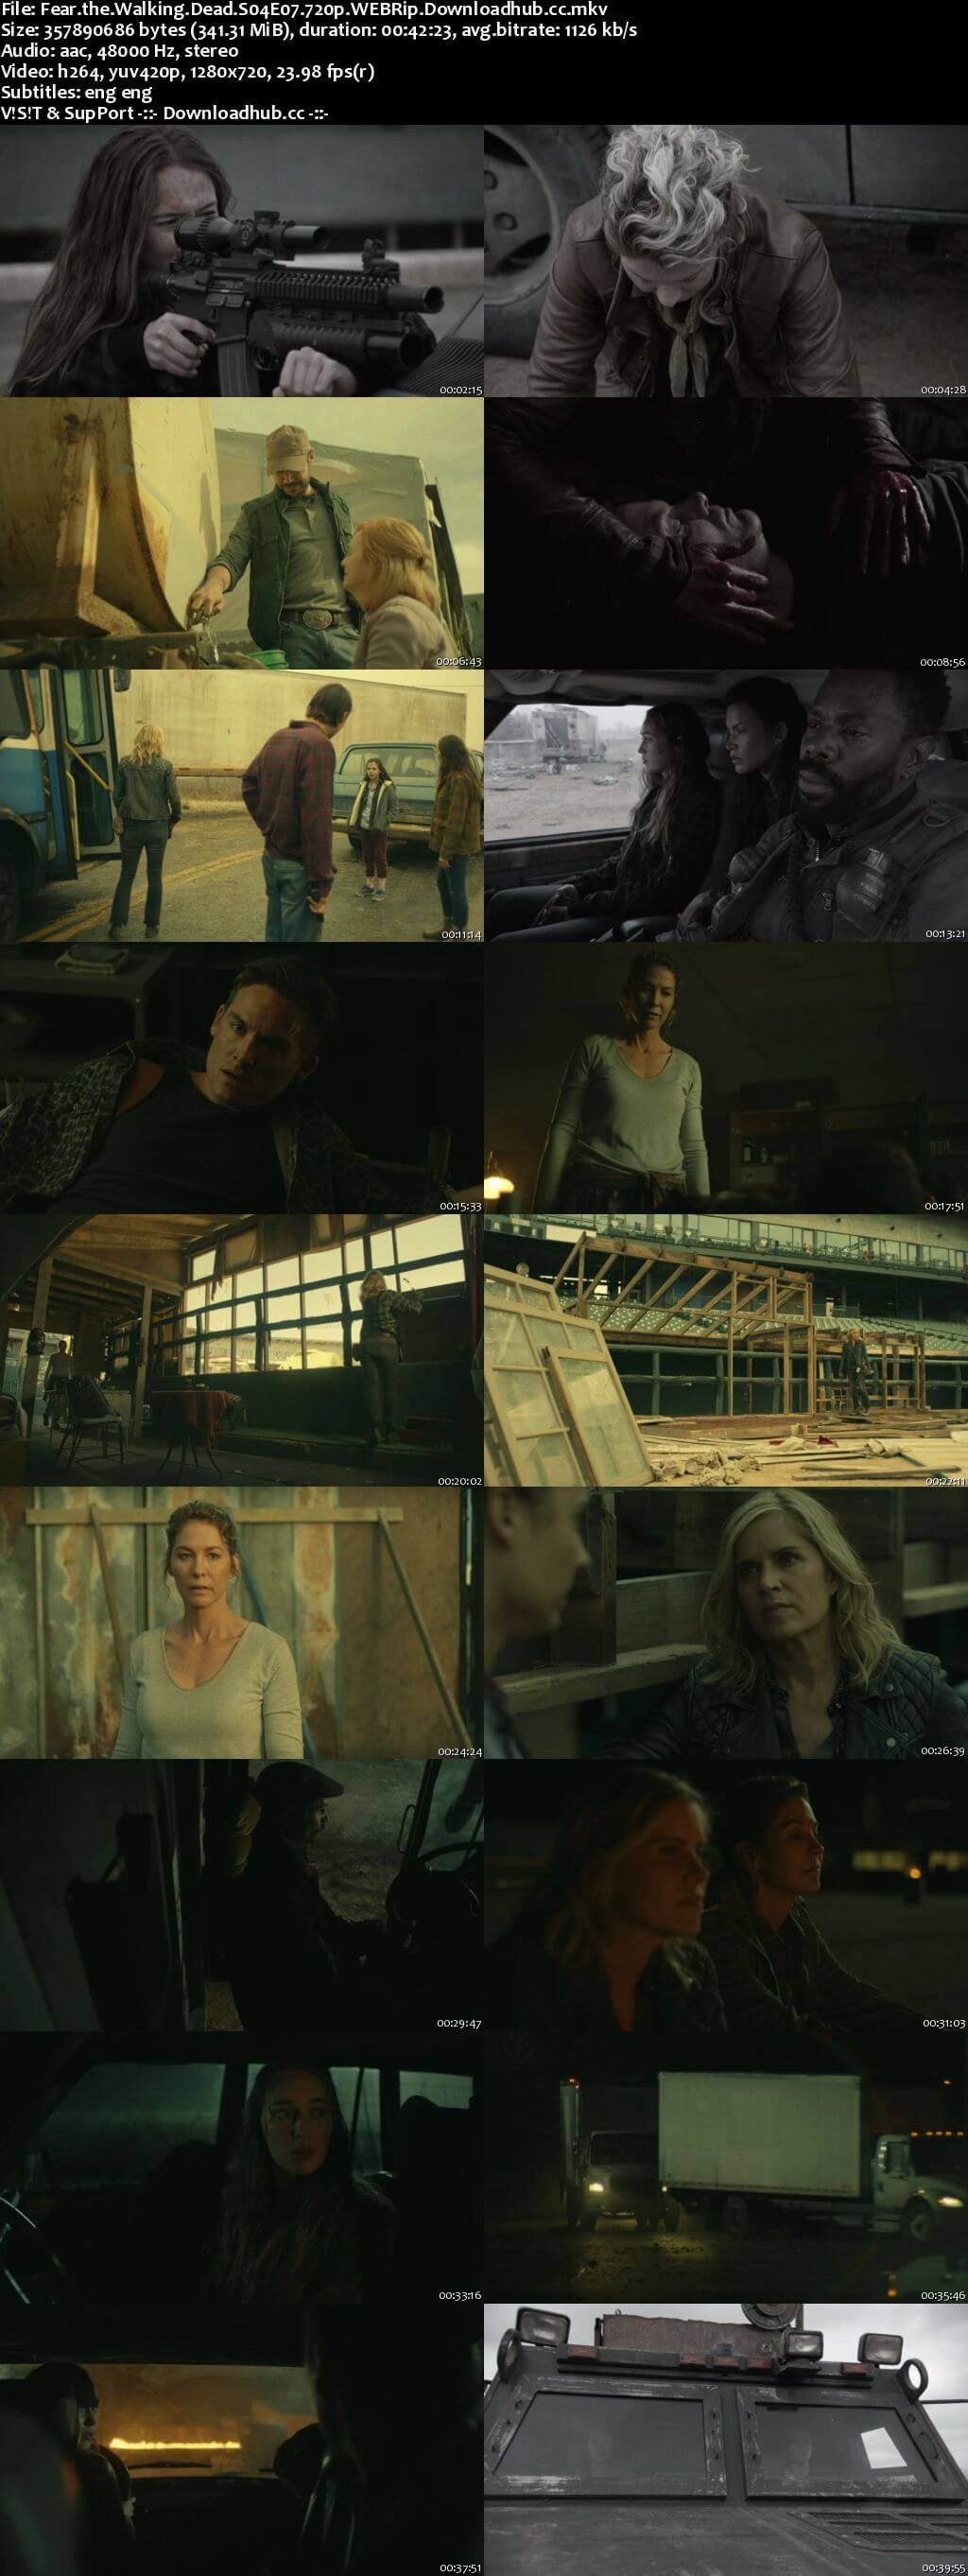 Fear the Walking Dead S04E07 350MB WEBRip 720p x264 ESubs